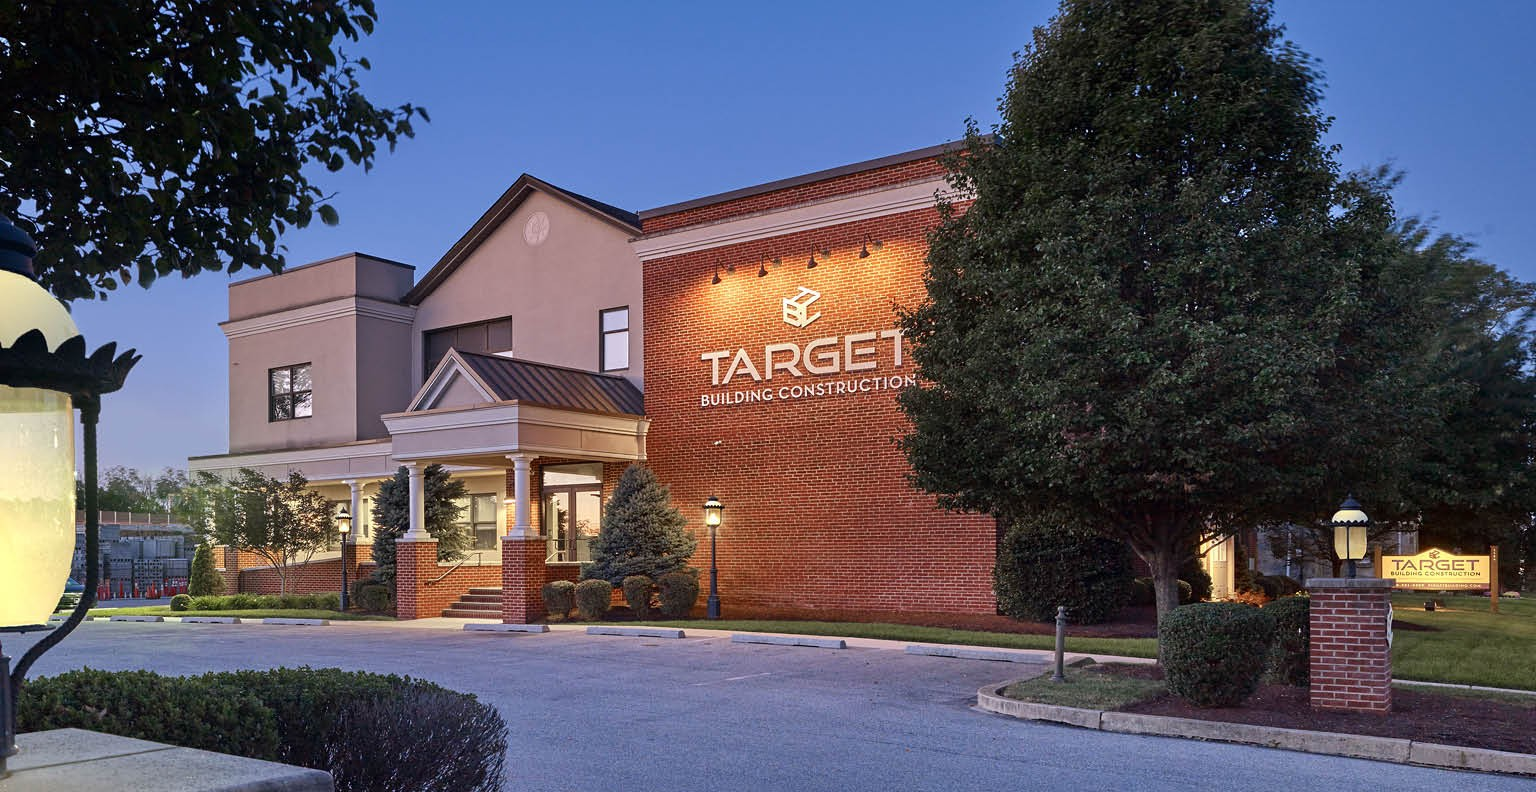 Target Building Construction, Inc  | LinkedIn